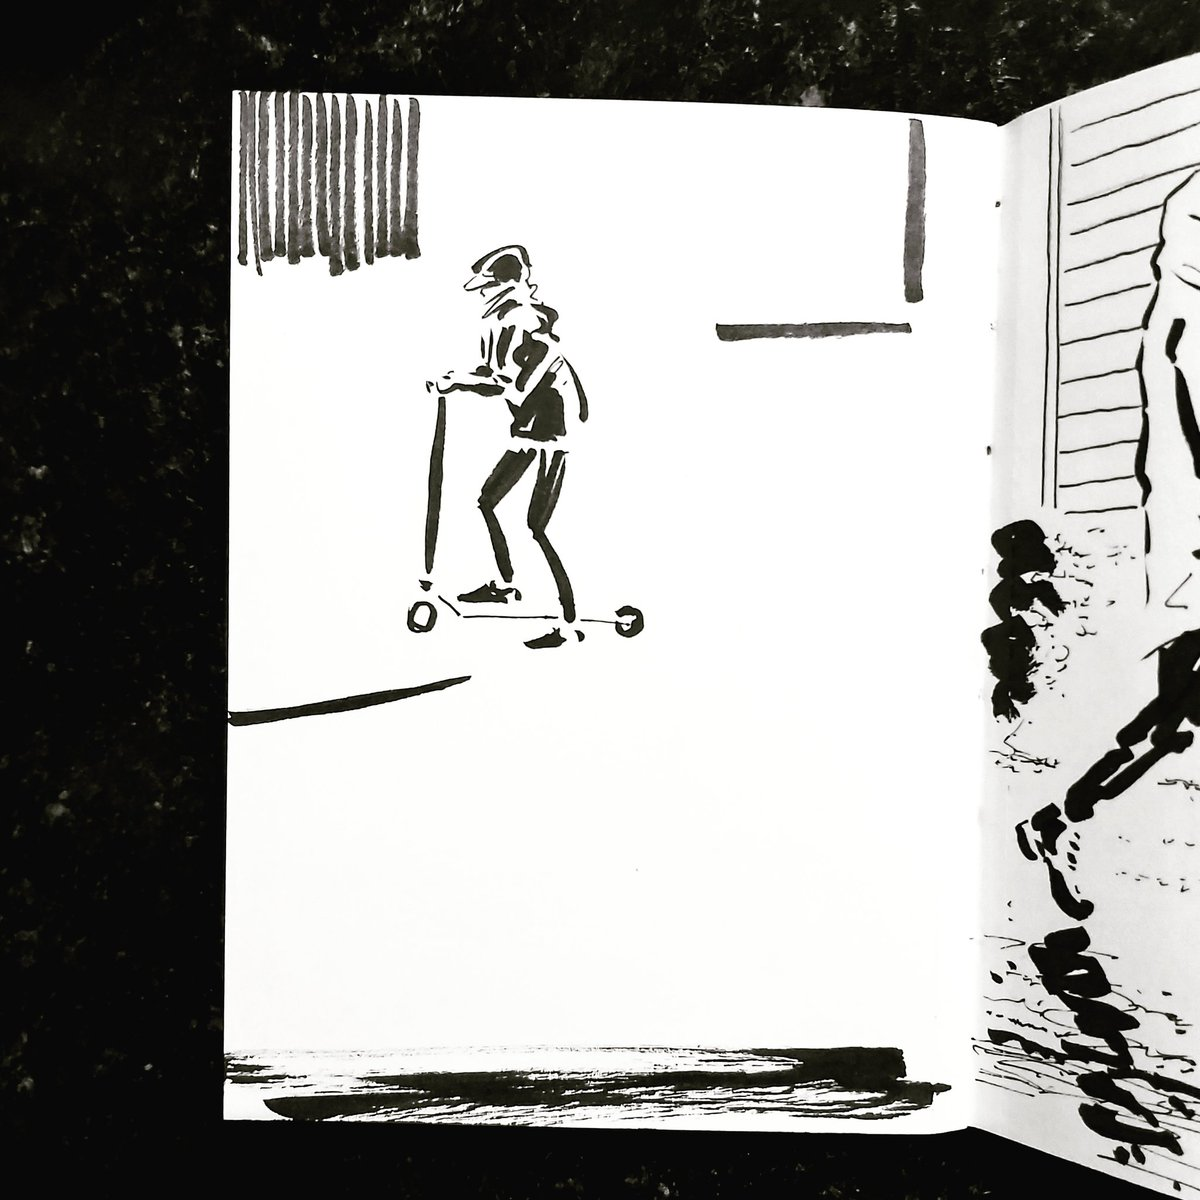 From the Inside 2 Day 110 (25o total) #isolation study Kitchen window Passerby No 149 #isolationlife #stayathome #lockdown #lockdown2uk #sketchbook #sketch #drawing #draw #doodle #ink #lineart #lifedrawing #figuredrawing #walk #artoftheday #art #artwork #artist #illustration